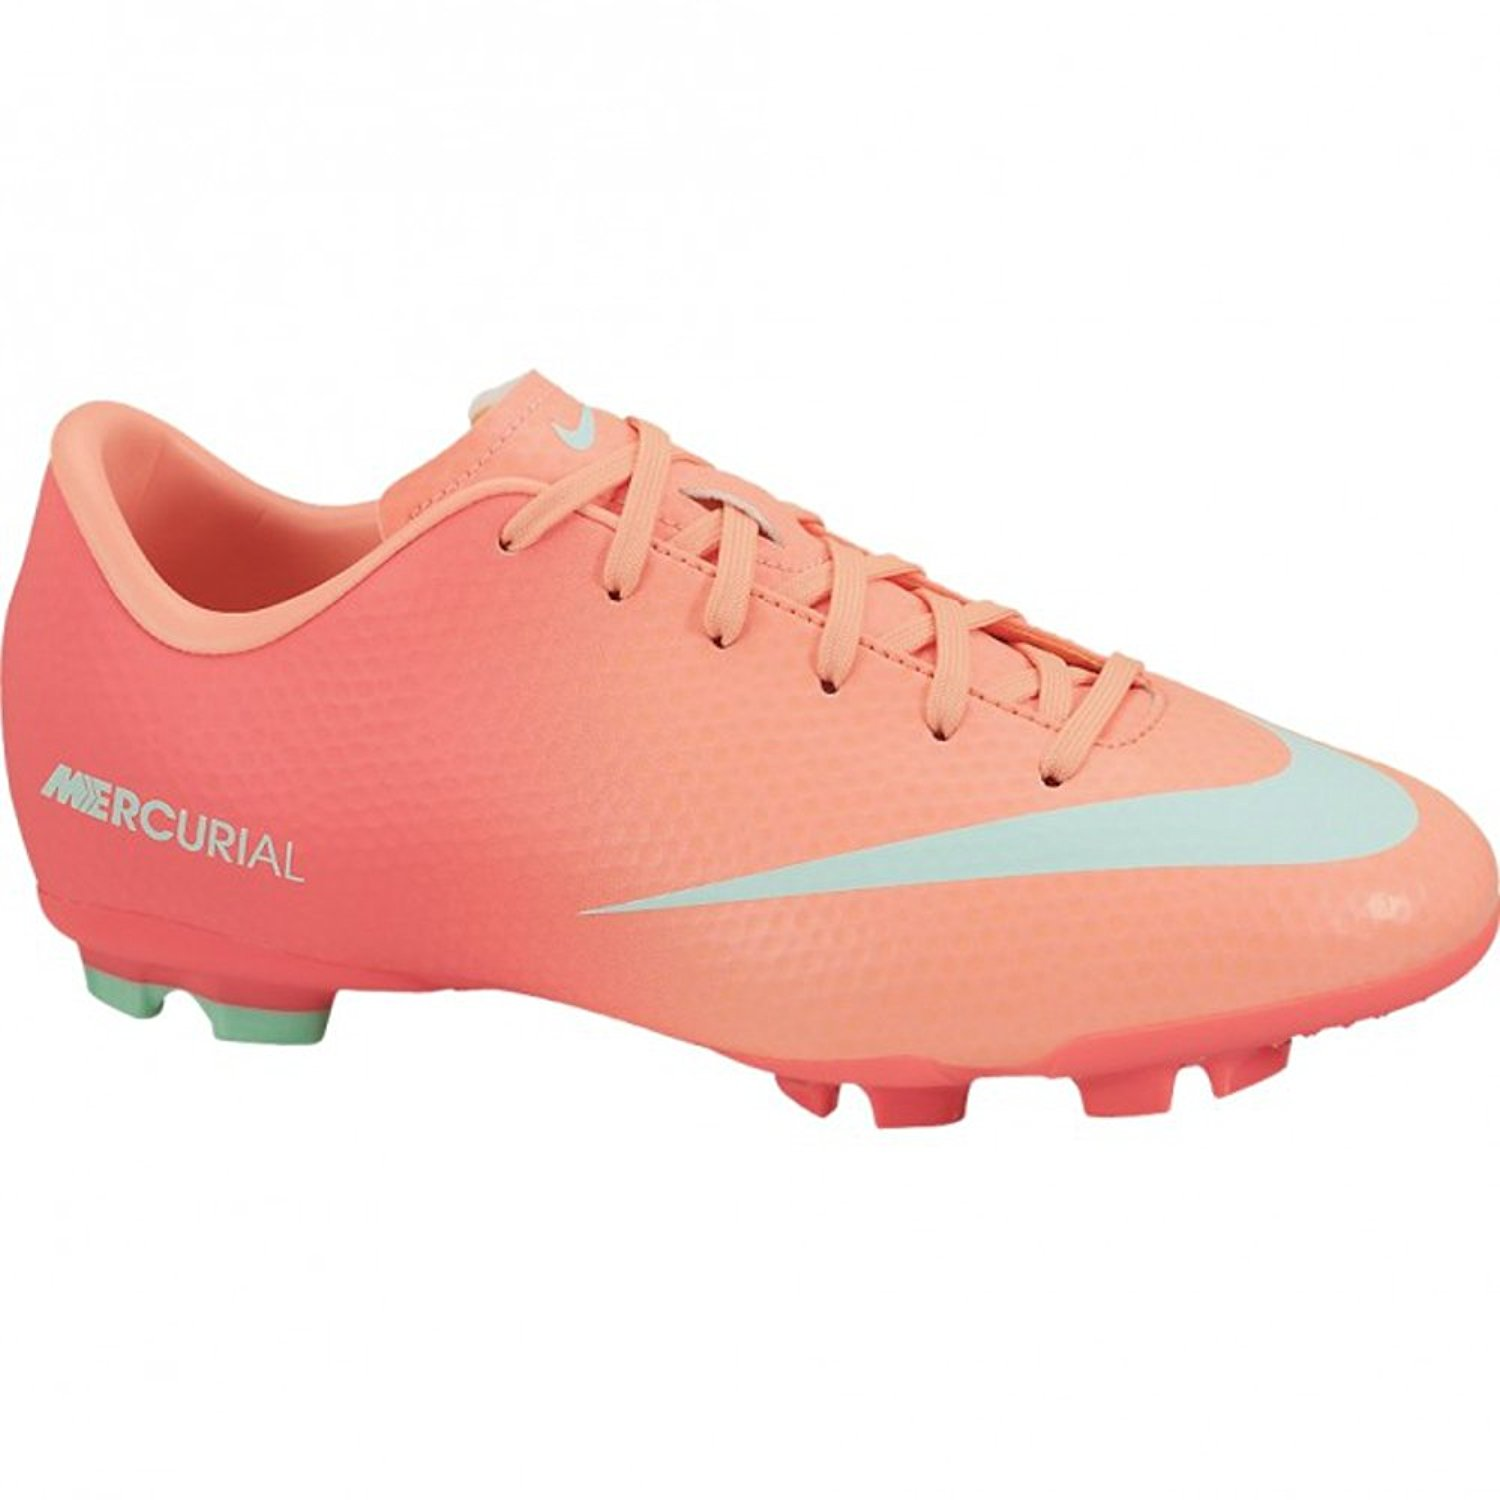 23ba2fde2 Get Quotations · Nike JR Youth Soccer Cleats Mercurial Victory IV FG Soccer  Shoes Pink 553631 (1)